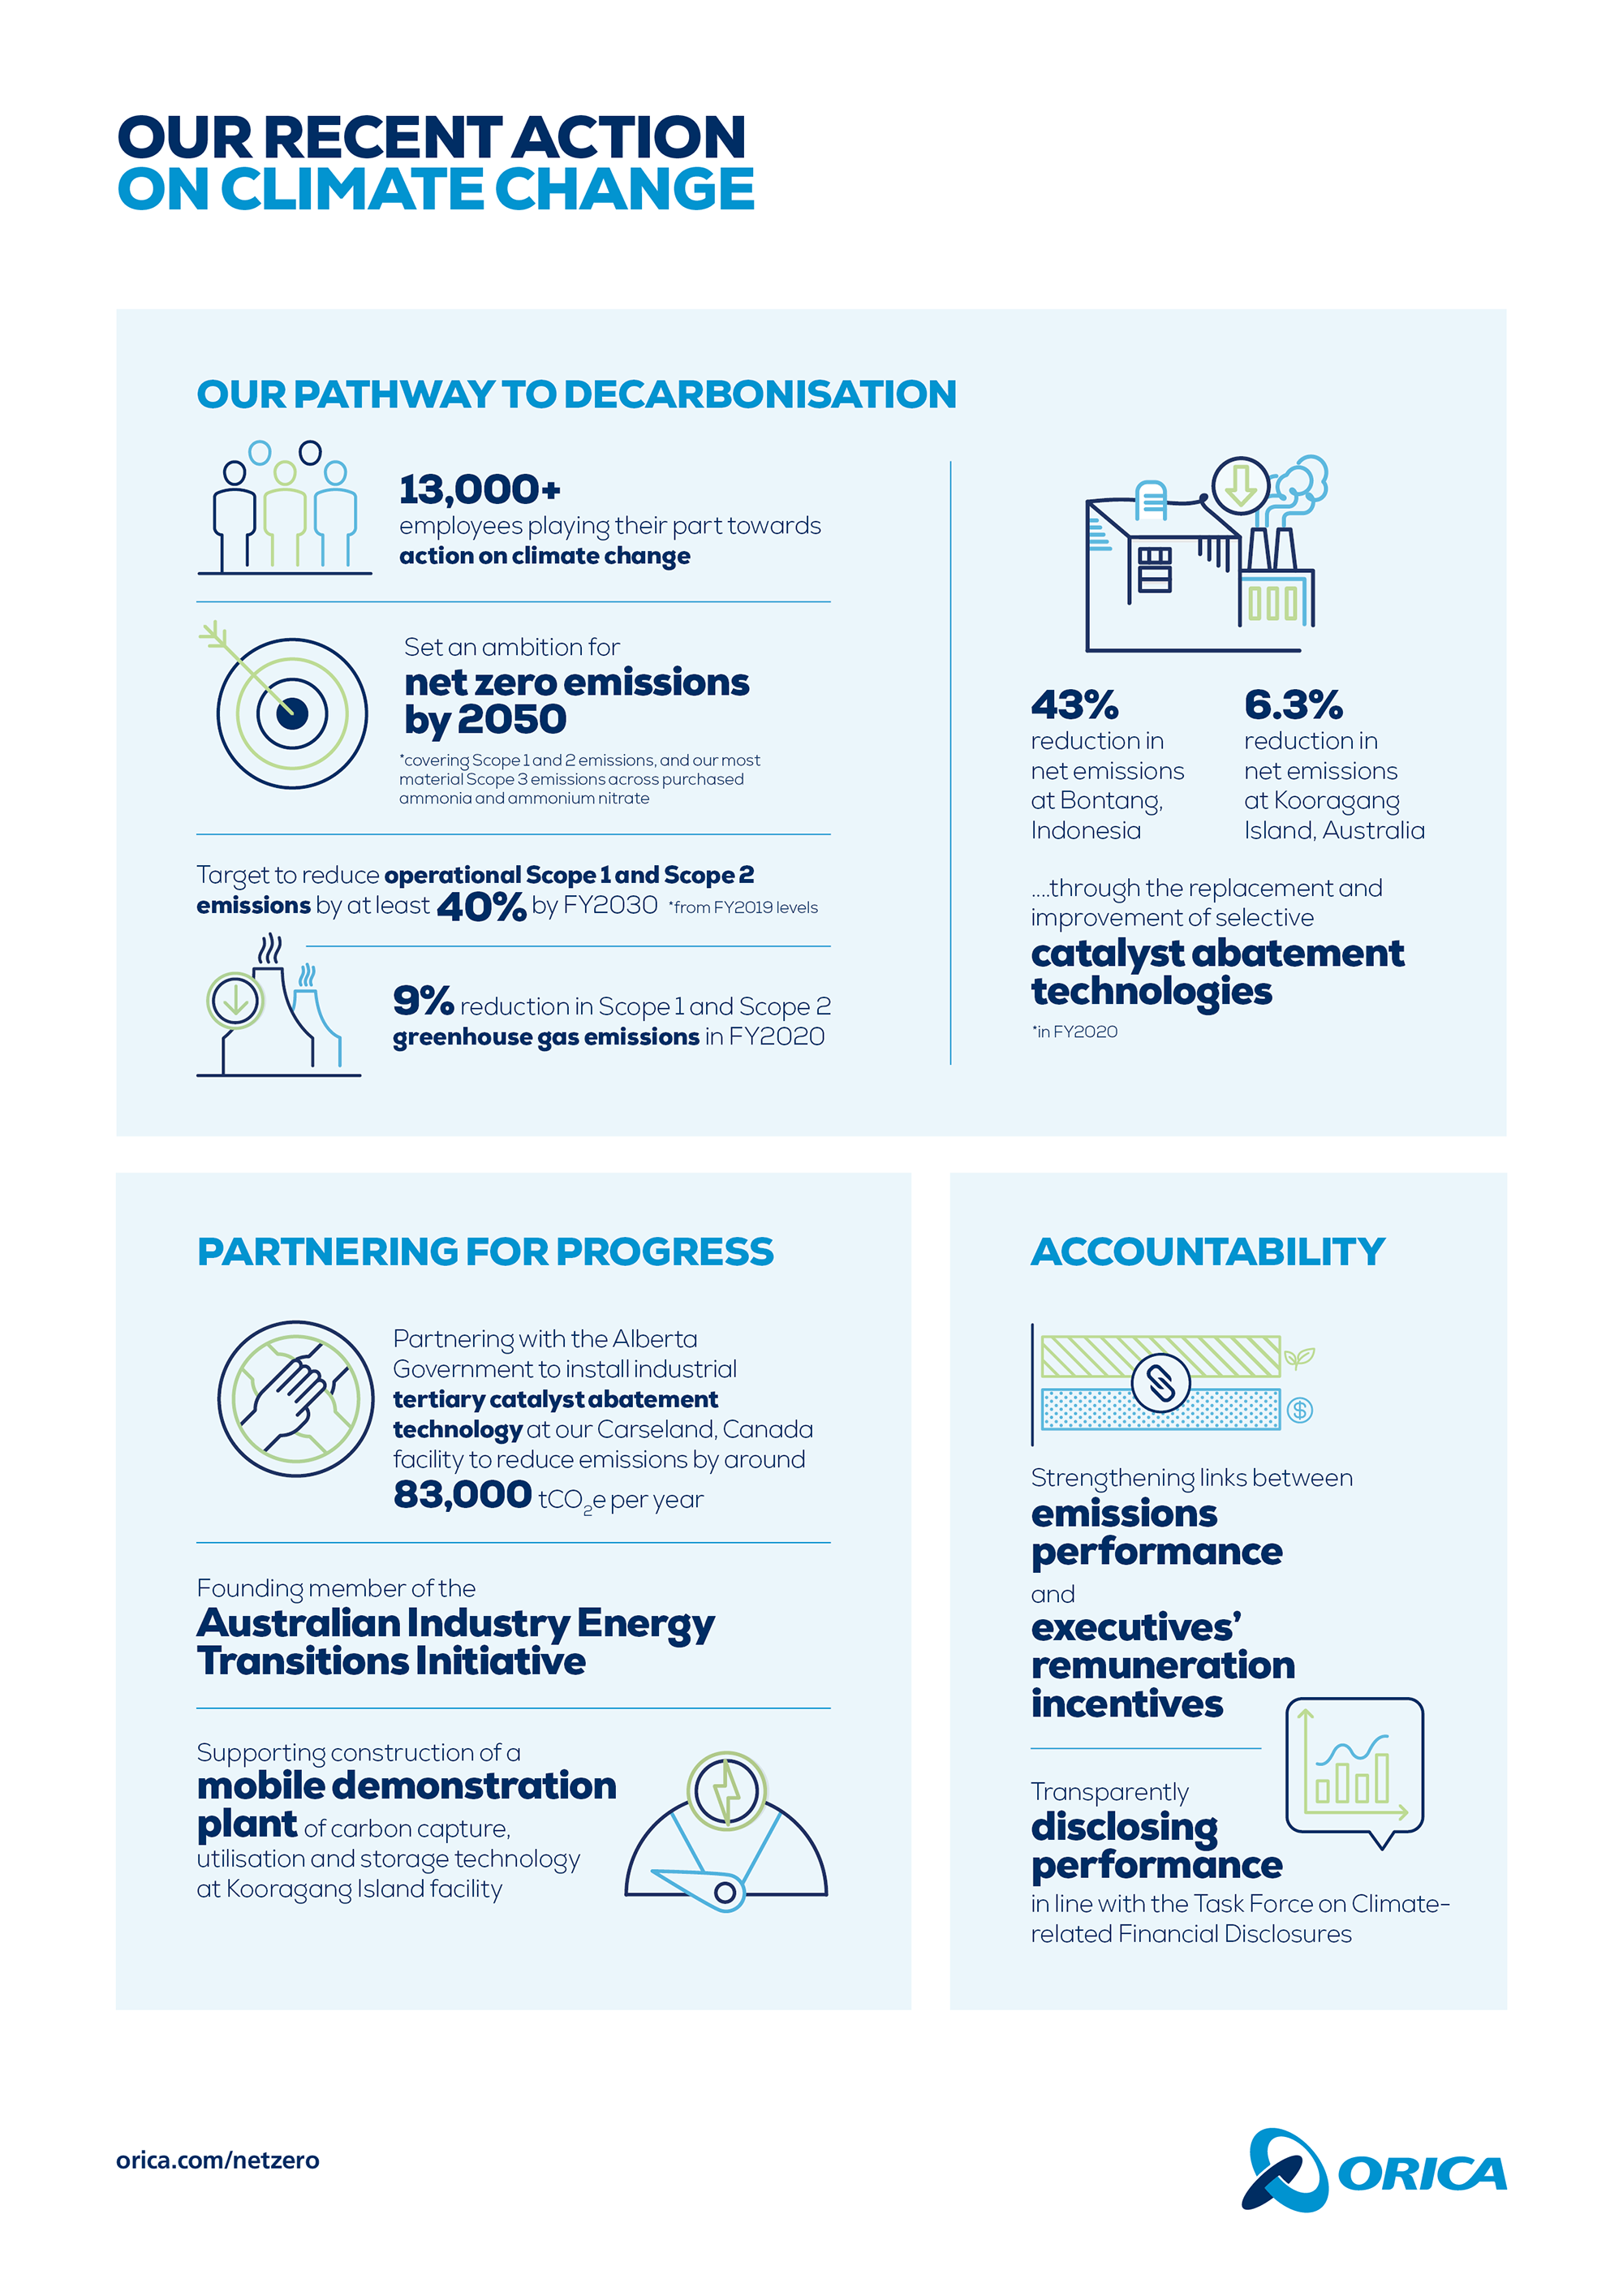 Orica_Action on Climate Change_Infographic